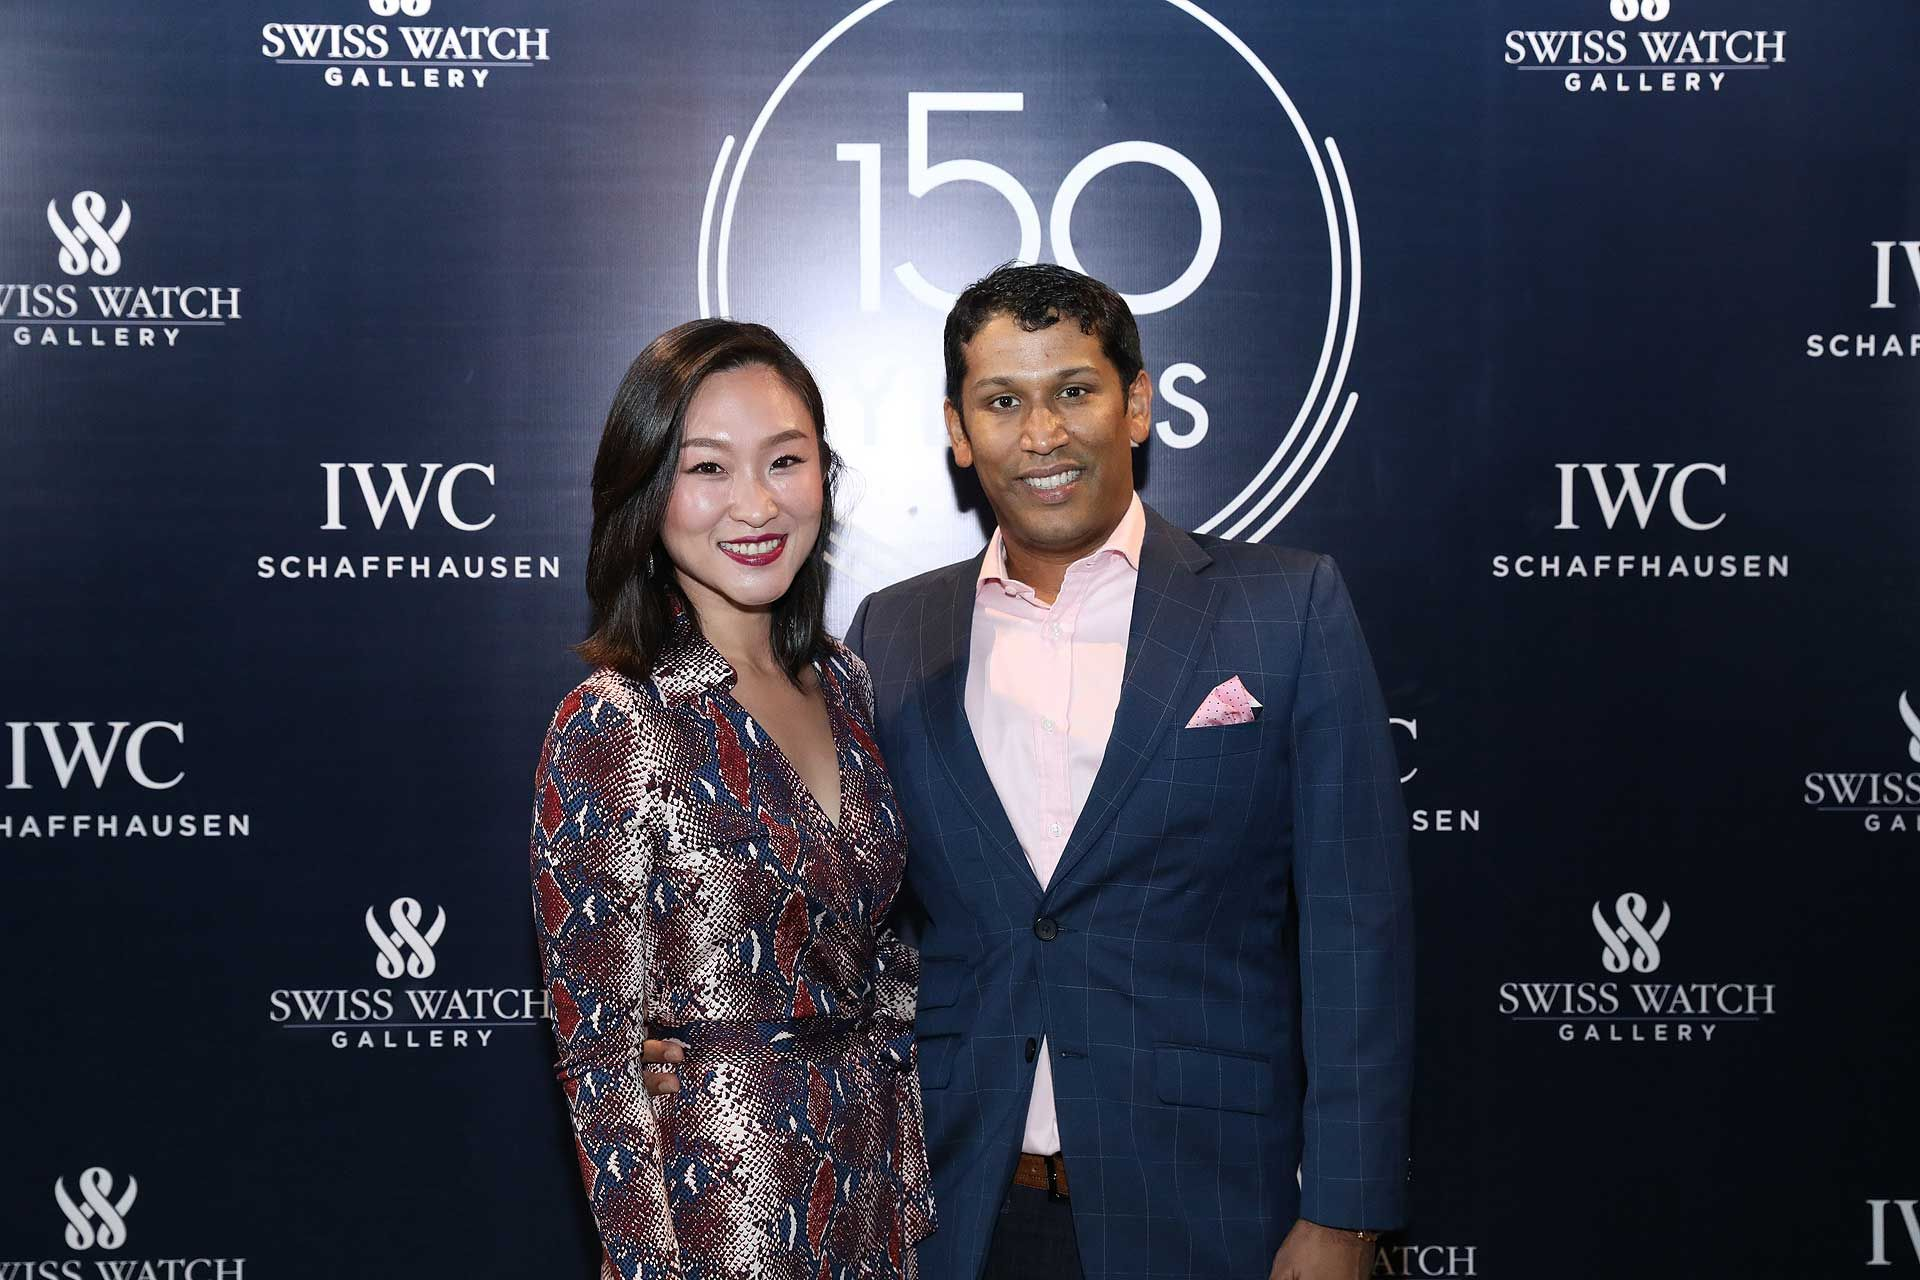 Leah Tan and Anil Abraham